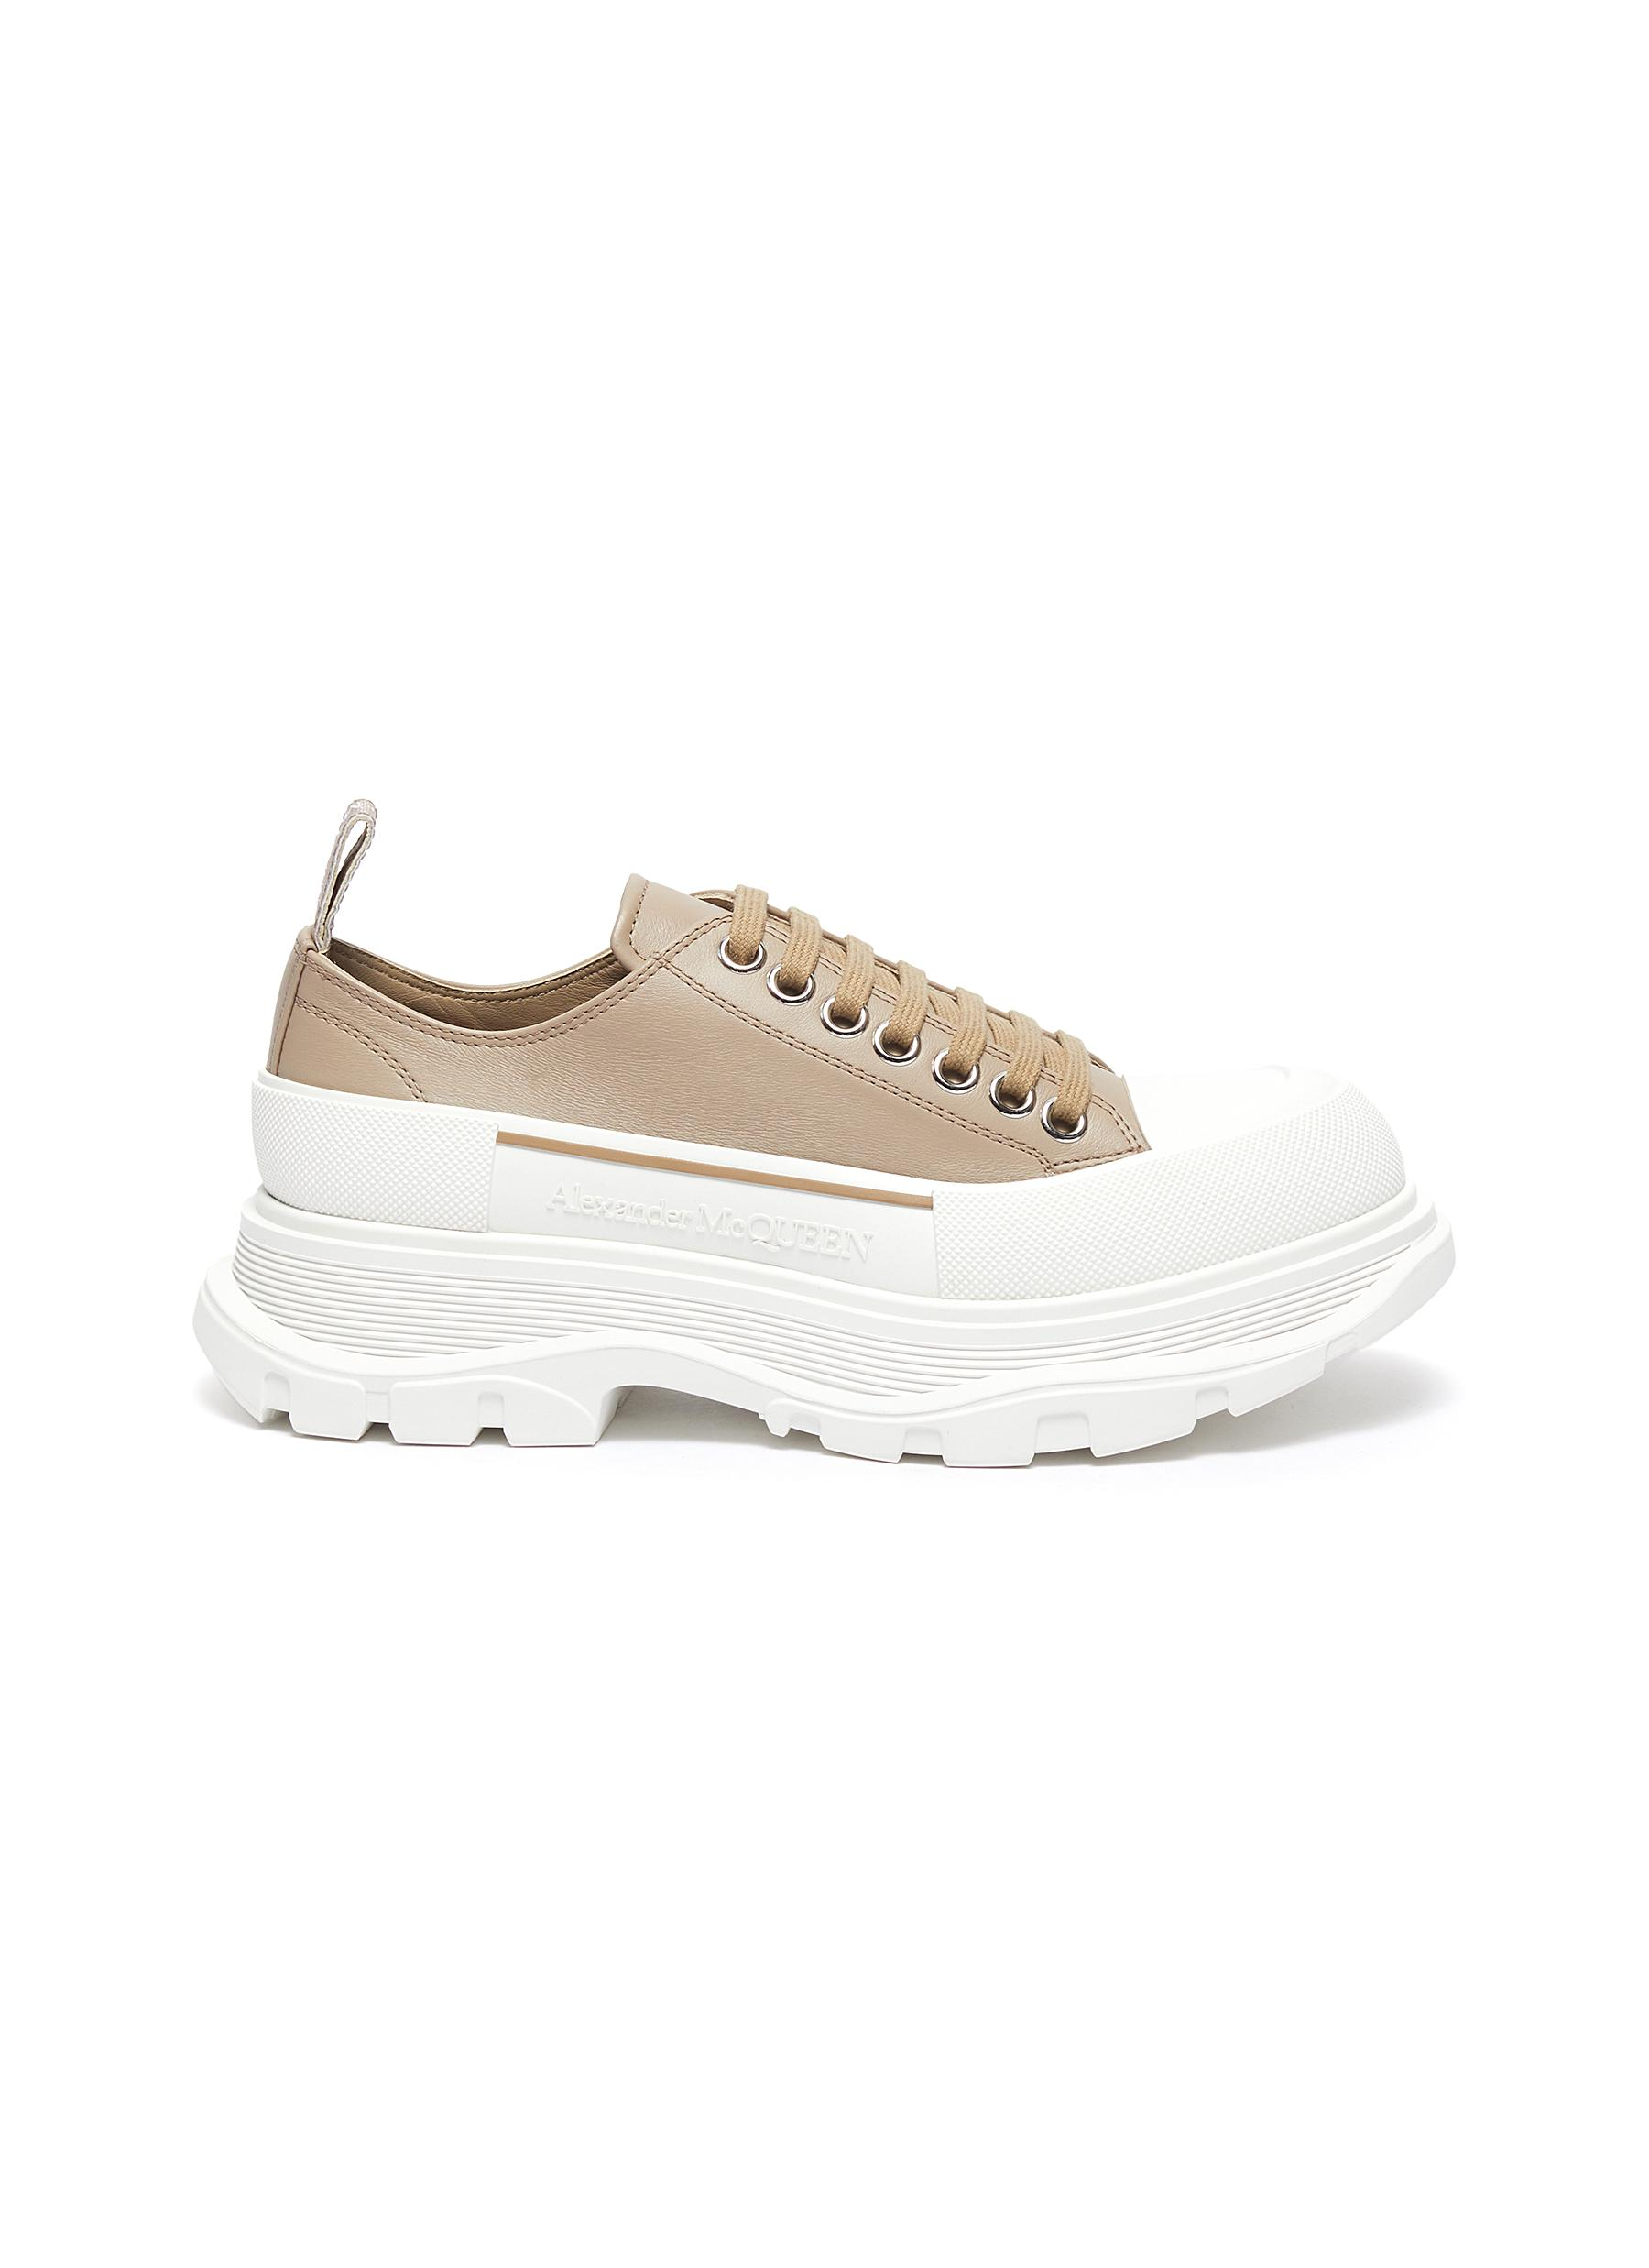 Chunky Sole Leather Slick Sneakers